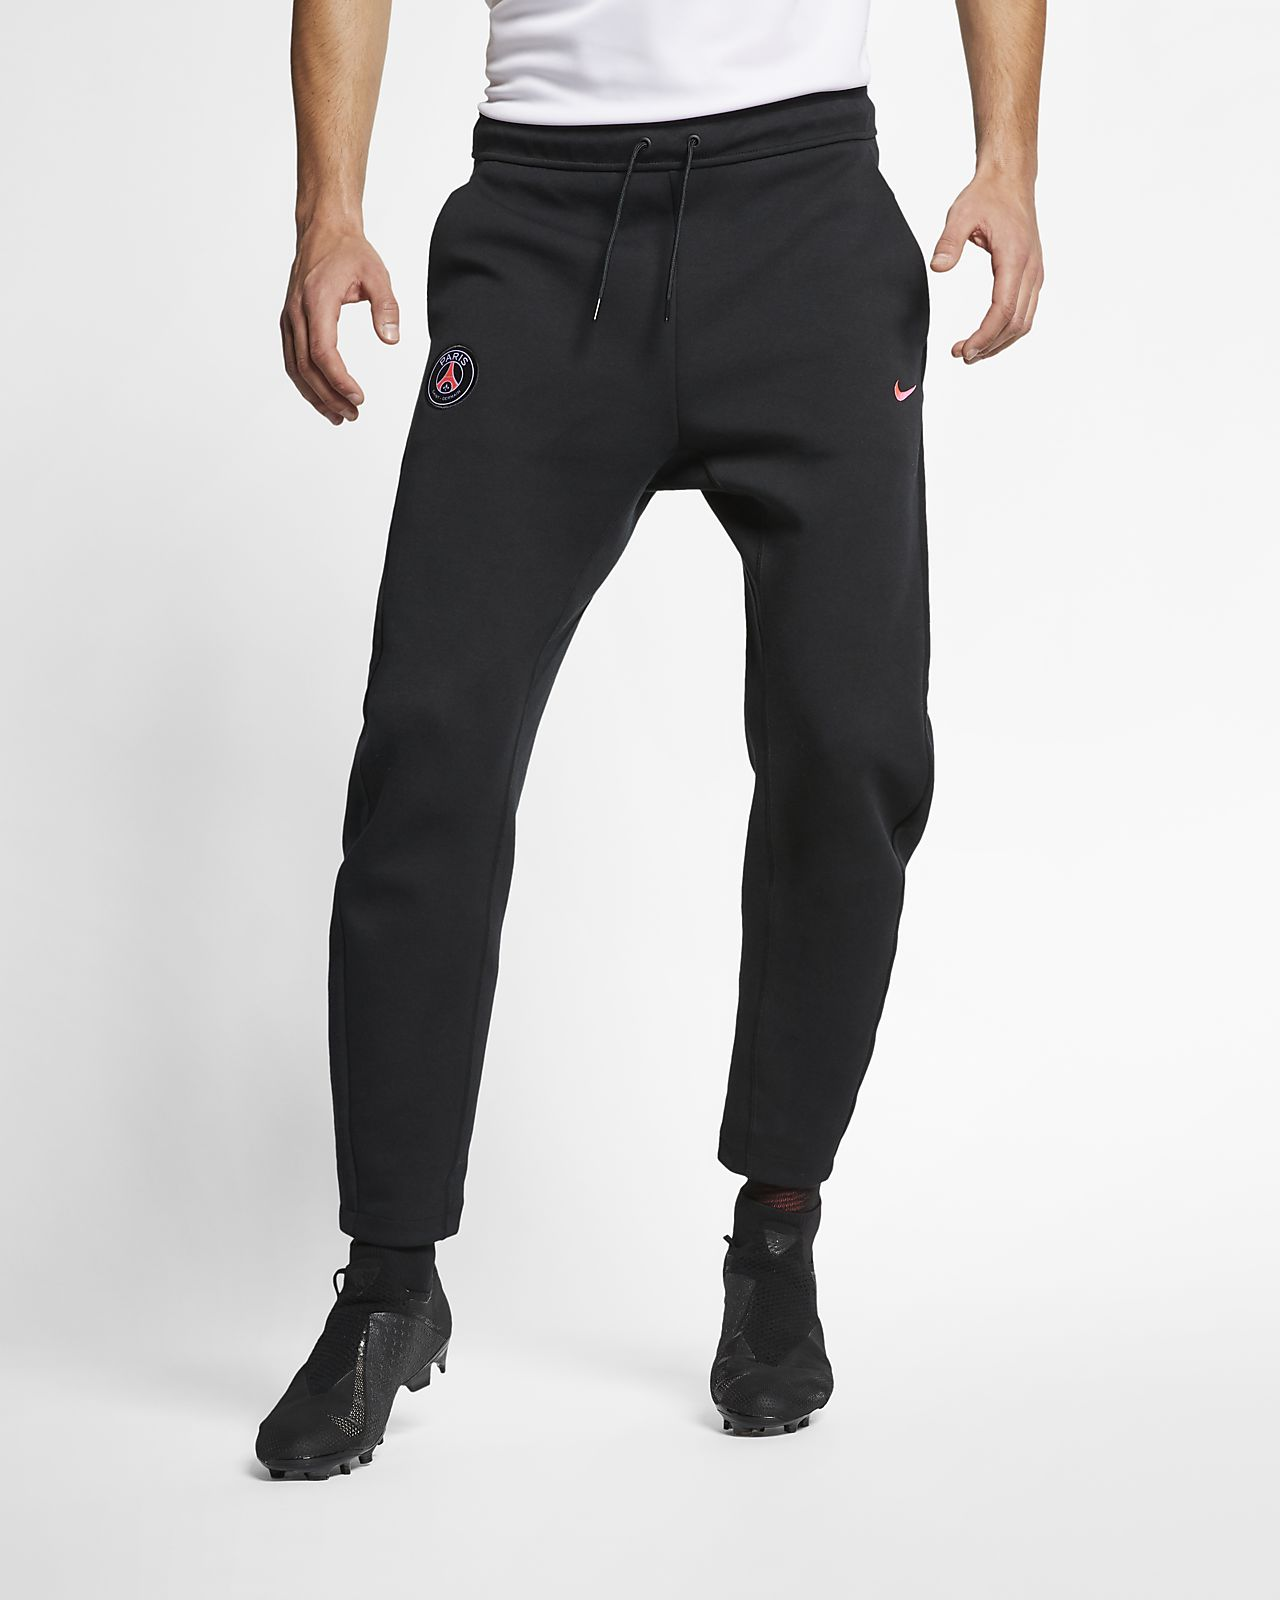 Pantalon Paris Saint-Germain Tech Fleece pour Homme